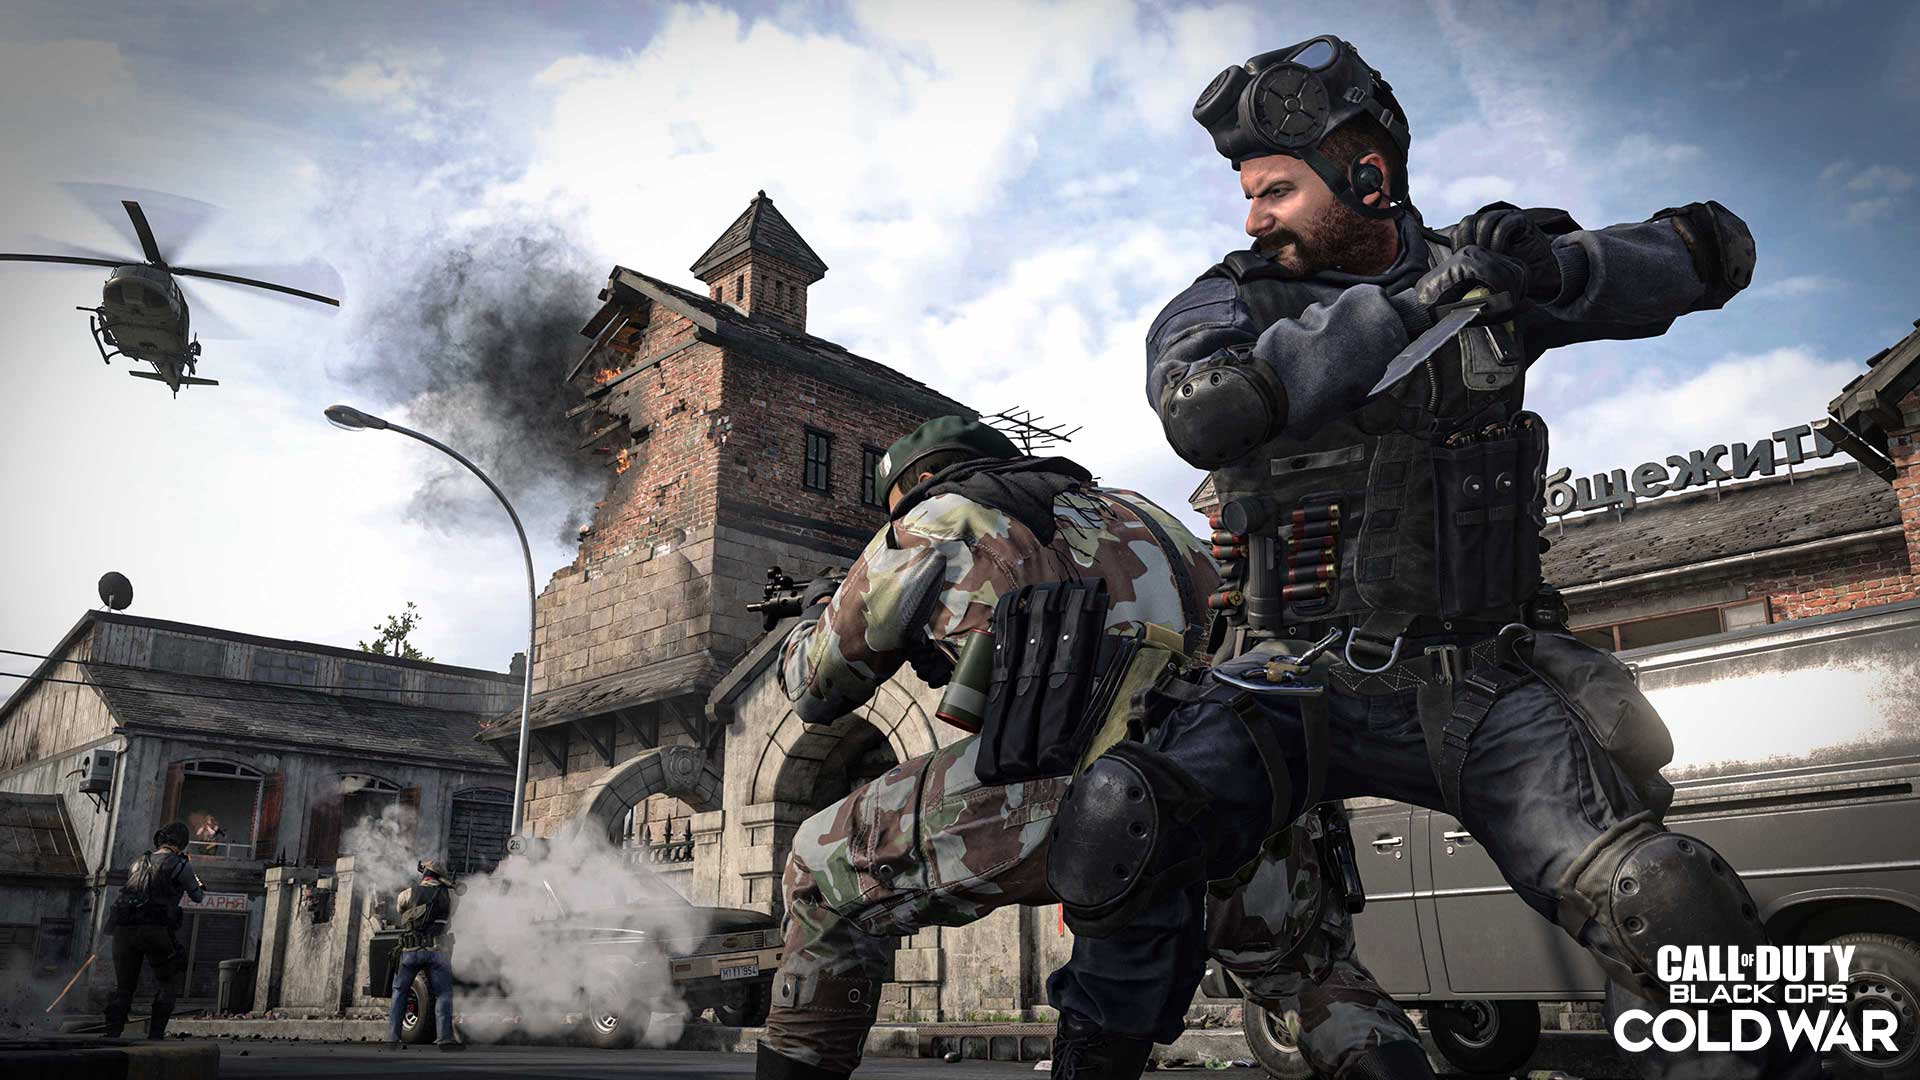 Black Ops 2 Map Standoff Ppsh 41 Smg Coming To Call Of Duty Black Ops Cold War In Season 3 Dot Esports